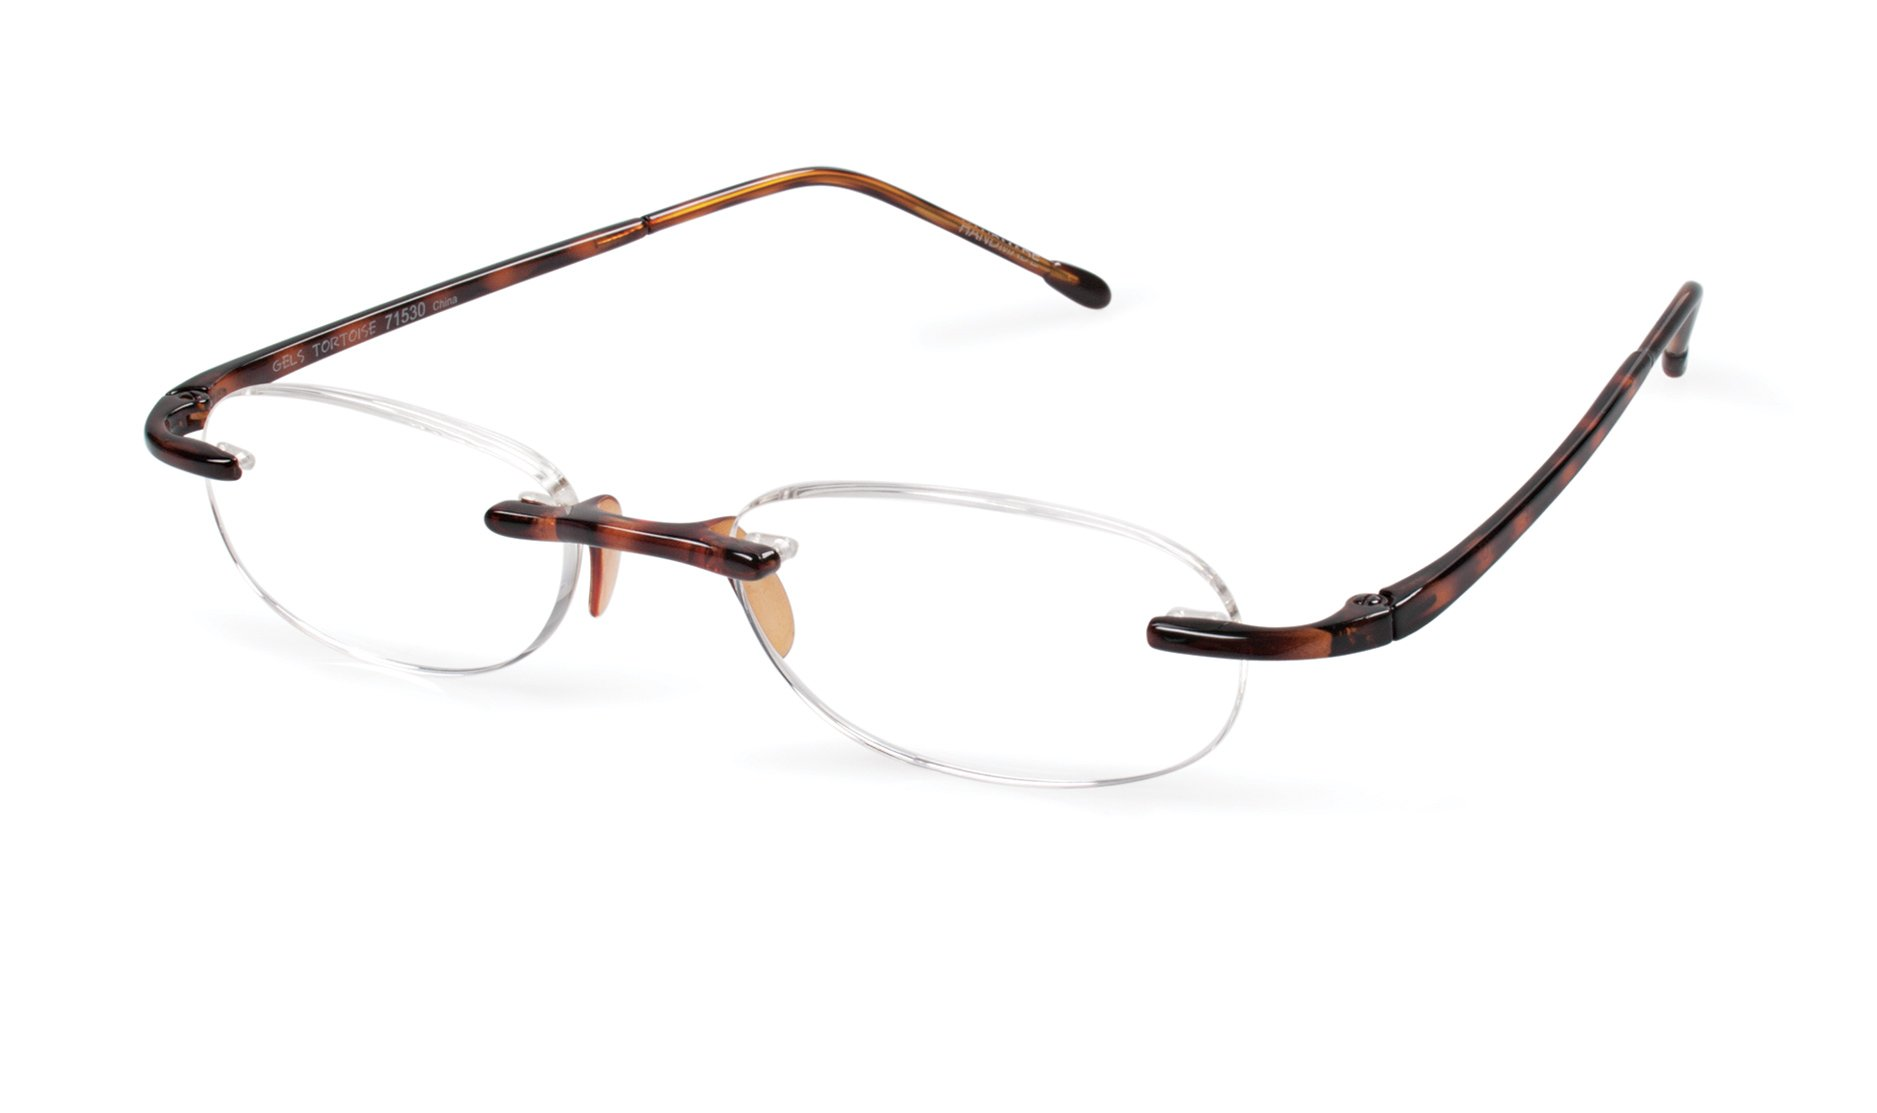 Gels - Lightweight Rimless Fashion Readers - The Original Reading Glasses for Men and Women - Tortoise (+1.50 Magnification Power) by Scojo New York (Image #1)